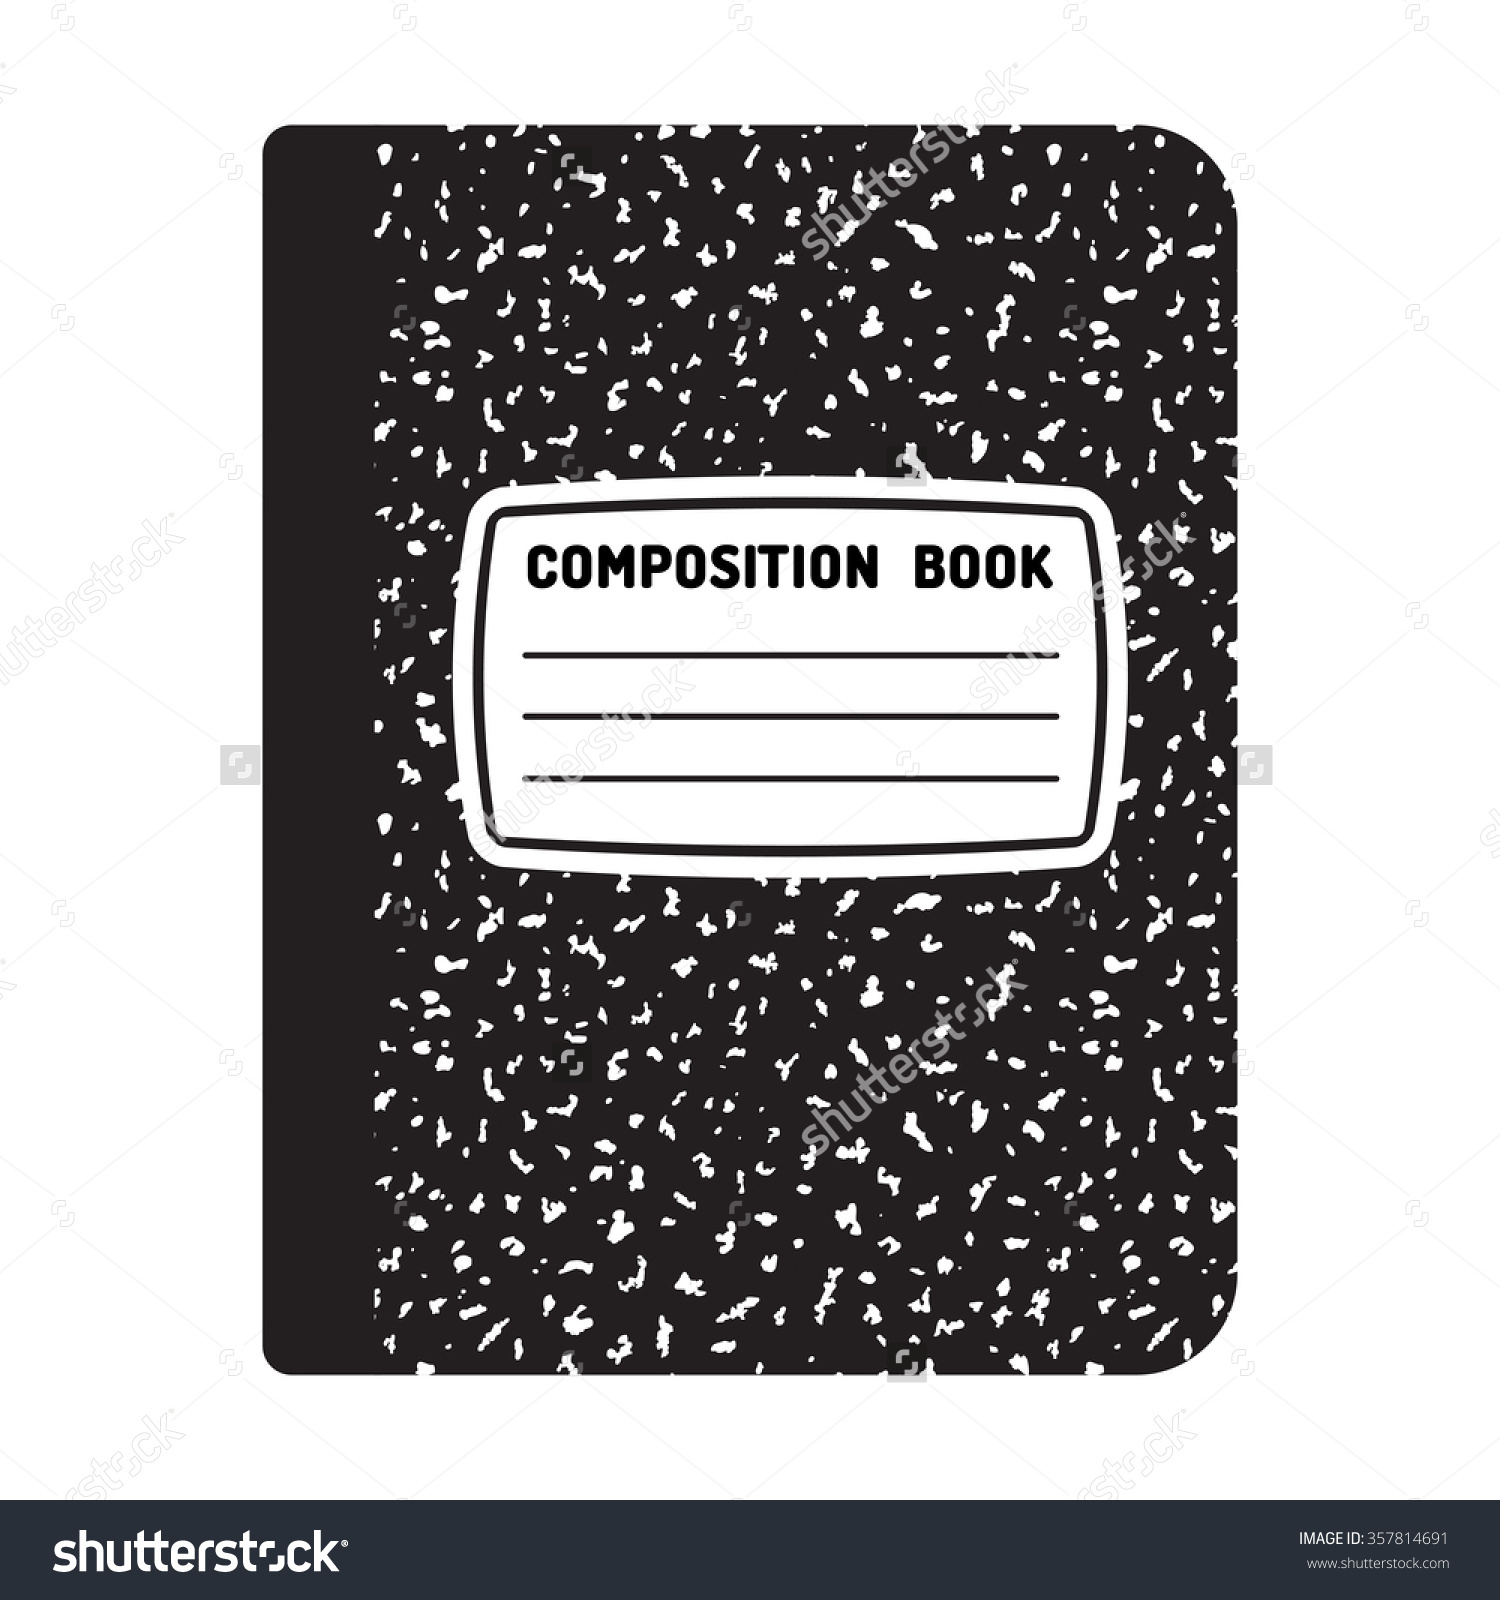 Composition notebook cover clipart.